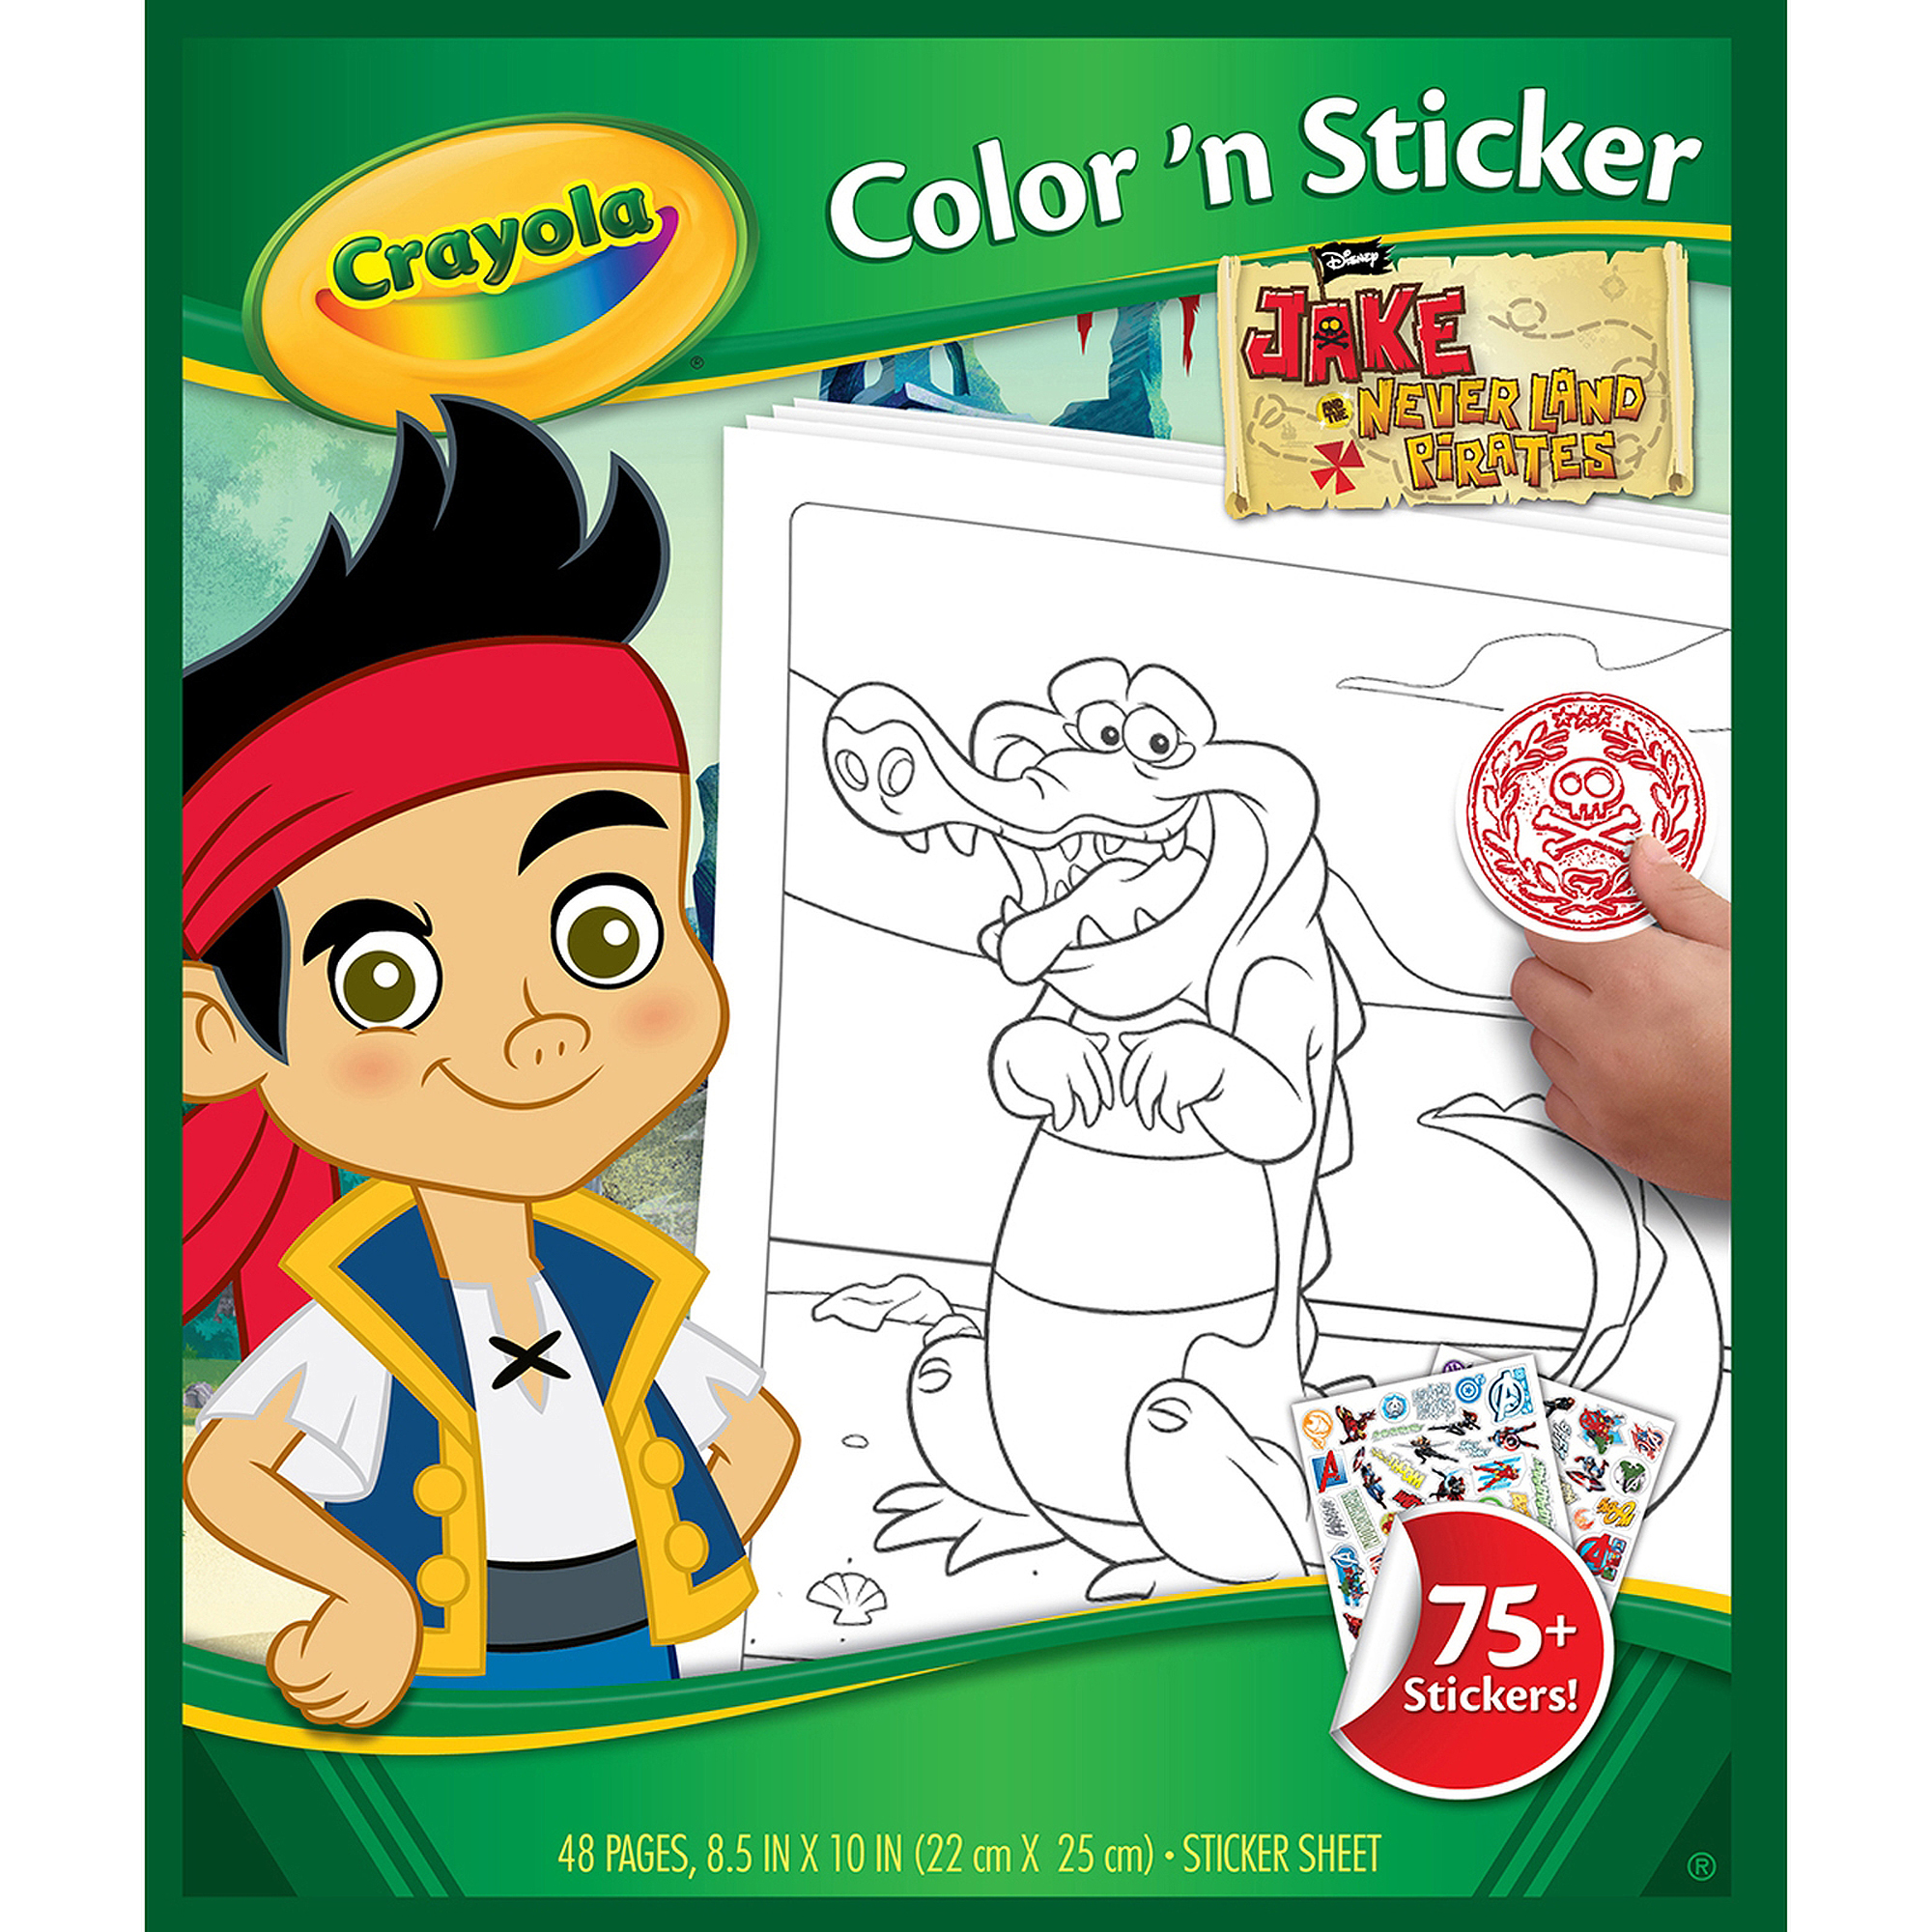 Color 'N Sticker Book, Jake And The Never Land Pirates